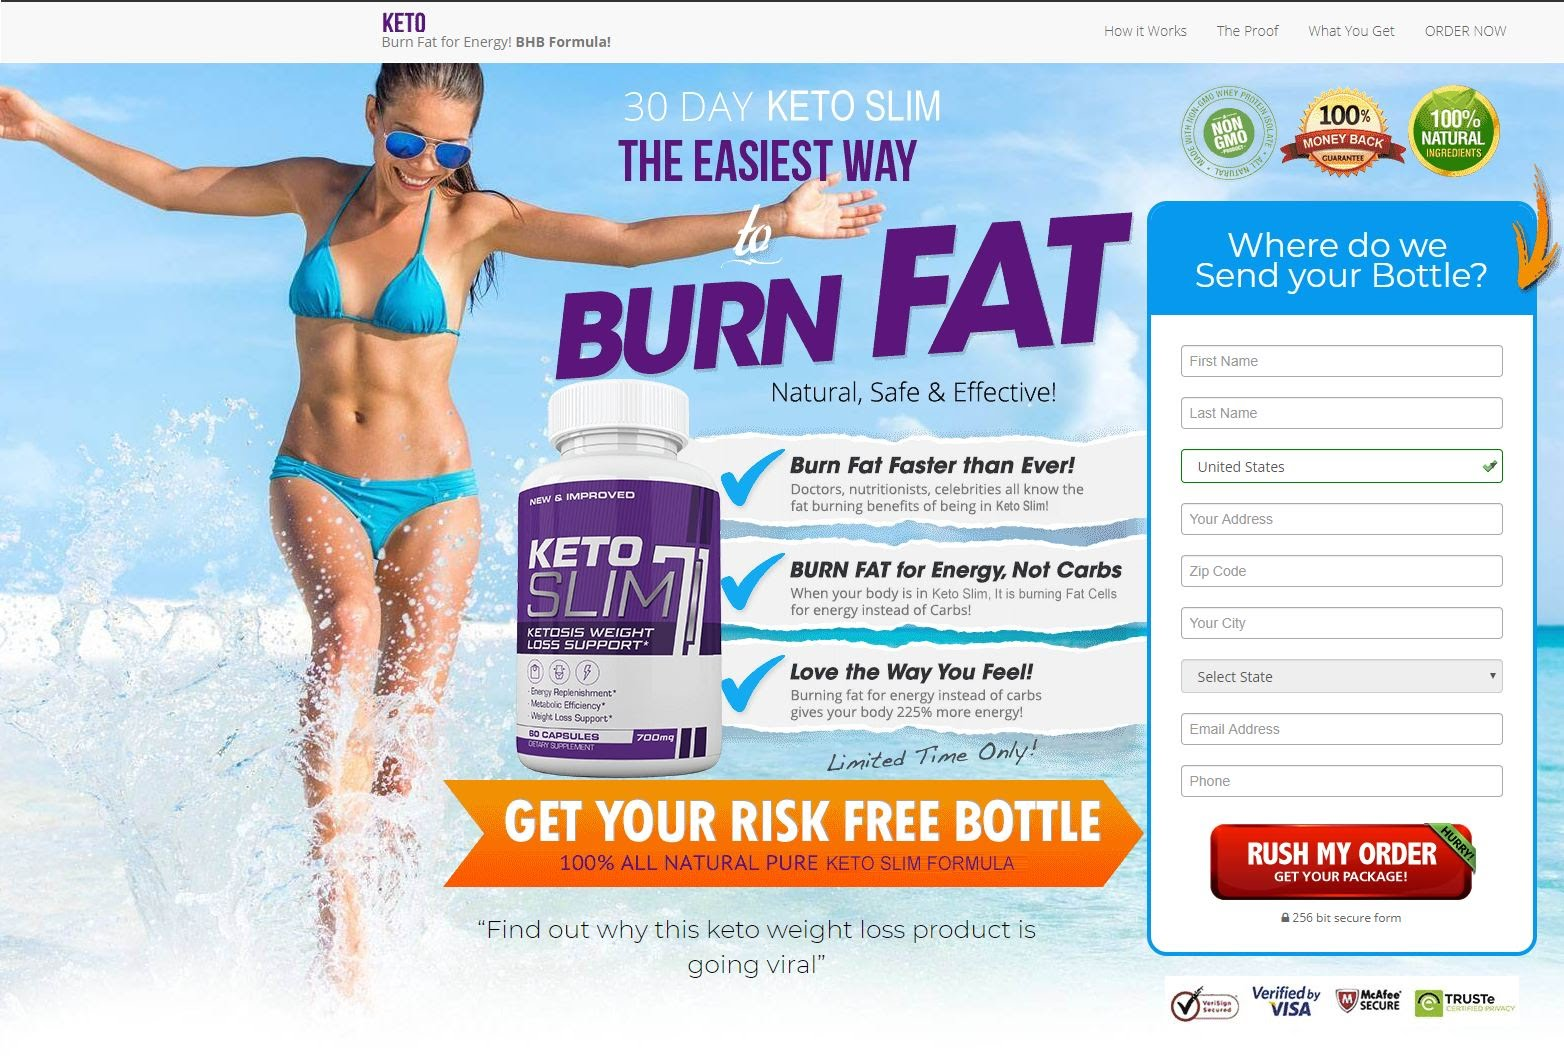 Is Keto Slim 7 Diet Scam Weight Loss Pills Reviews Price